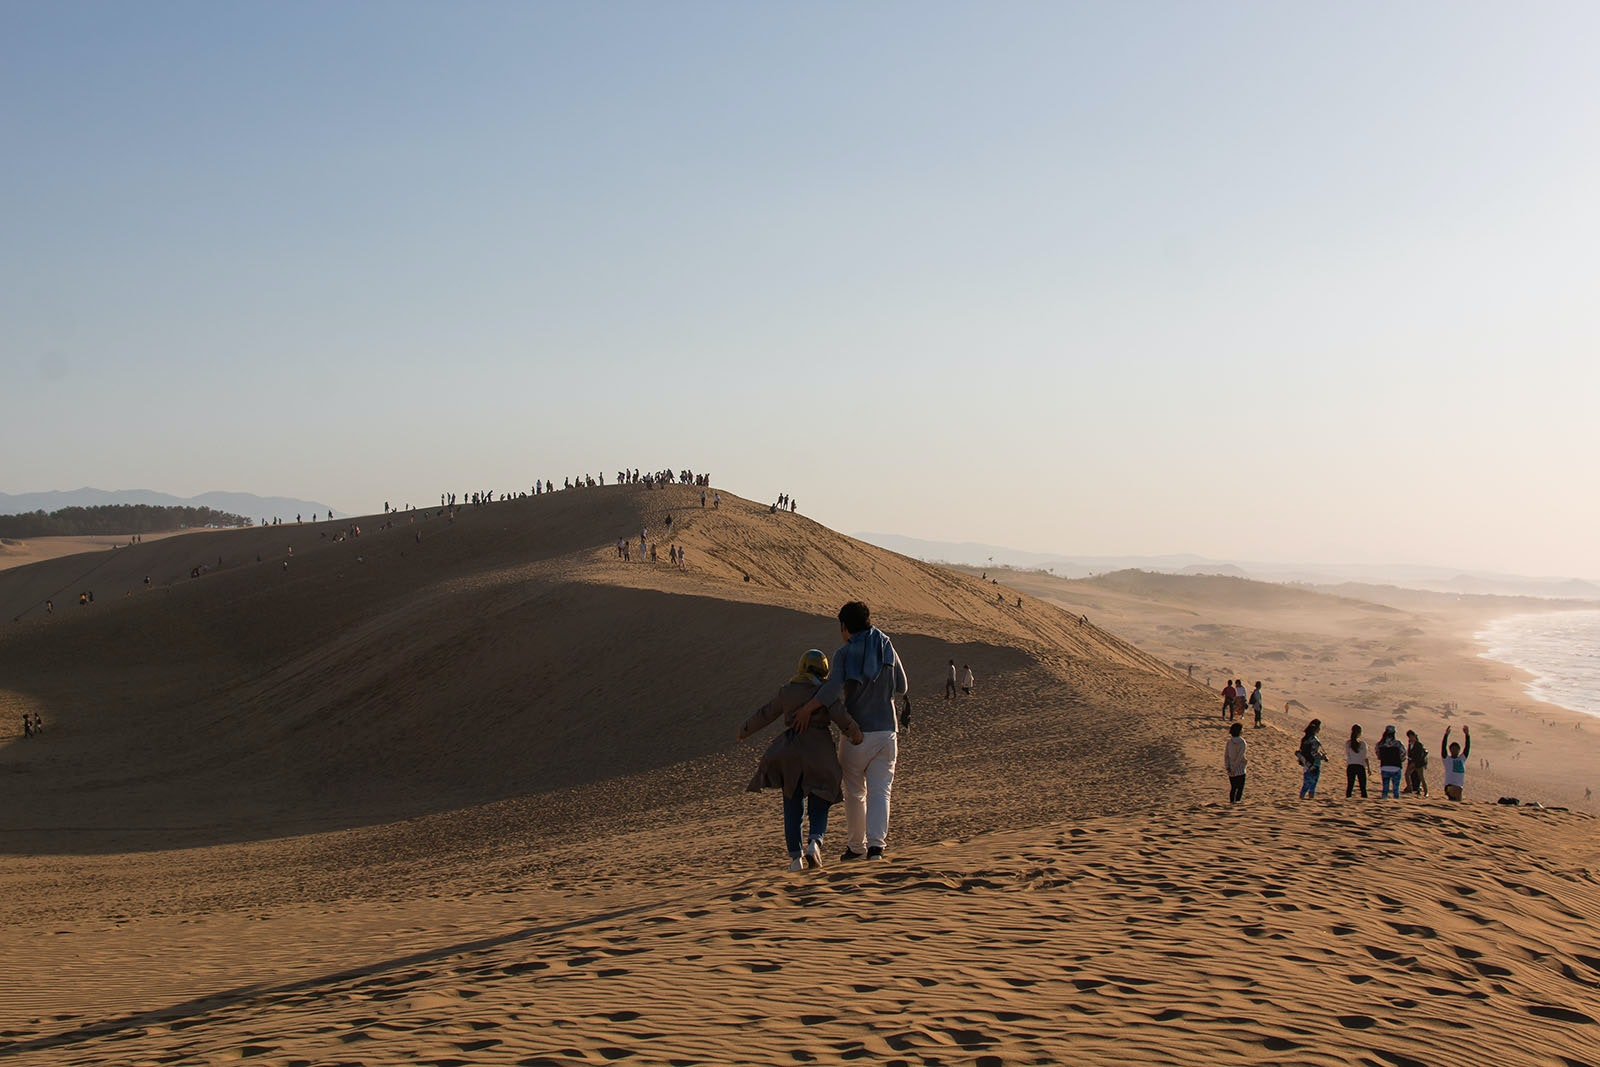 There's more to do than just sandboard at the popular Tottori dunes.